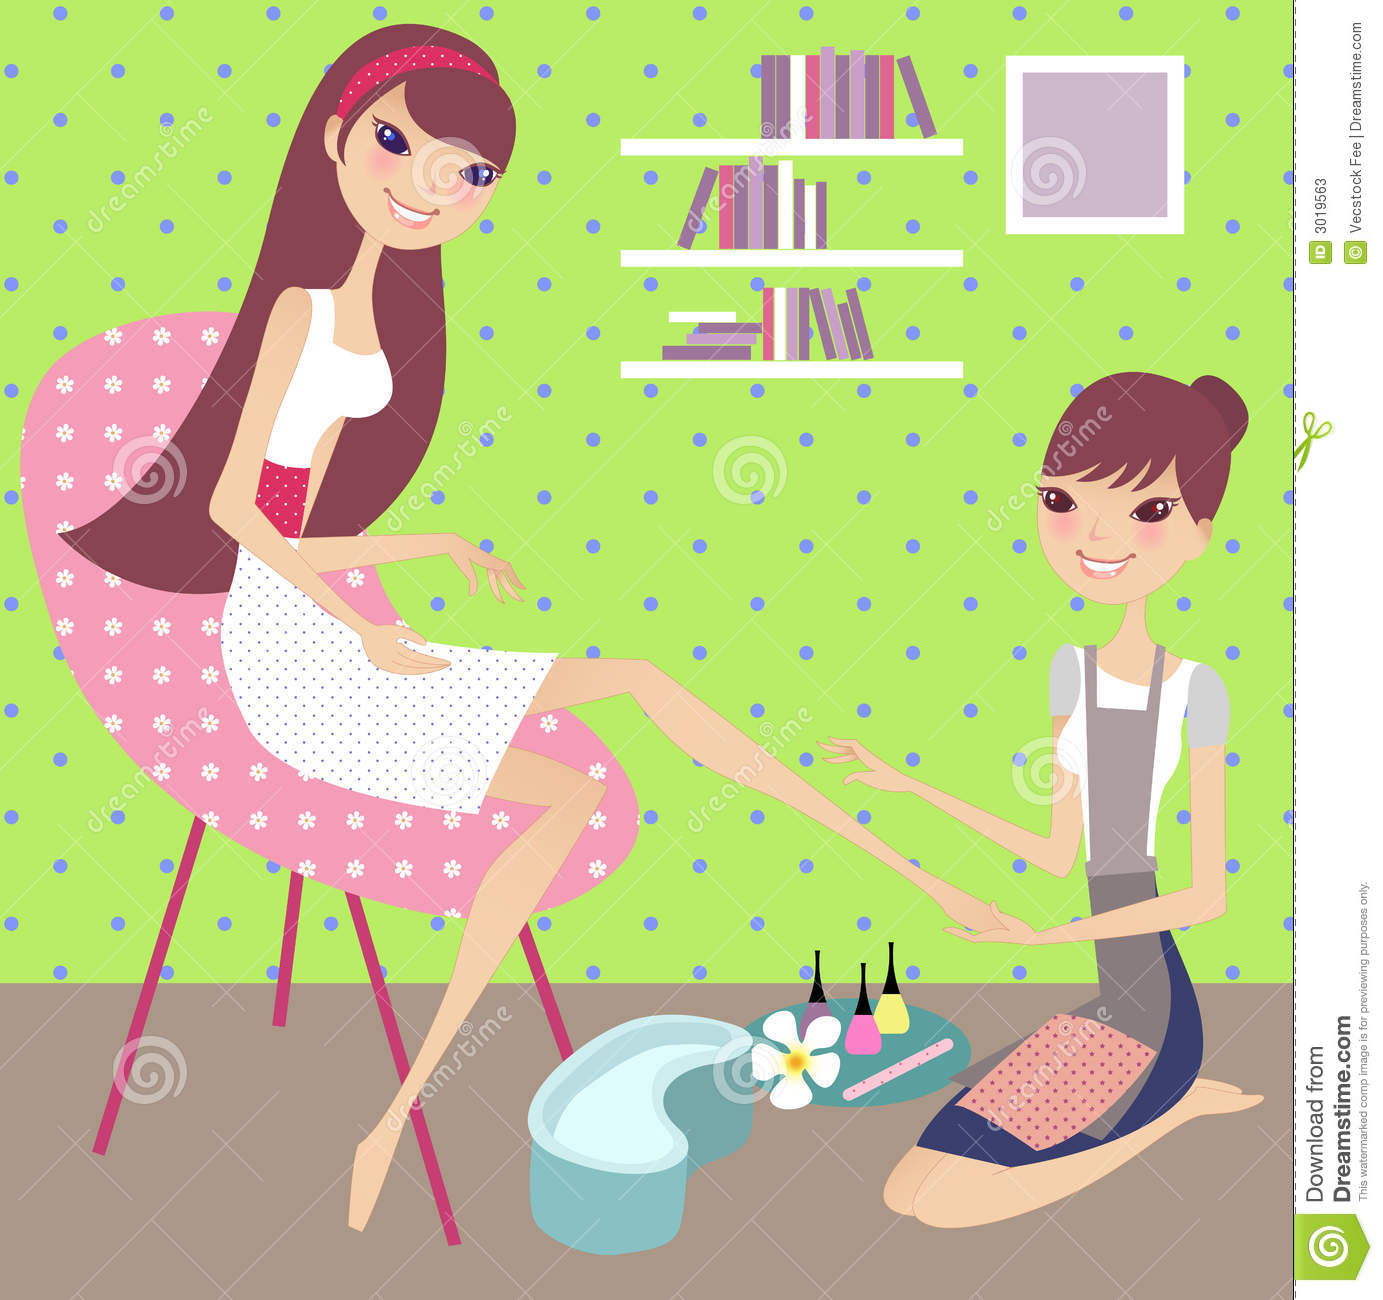 A Nail Art Beauty Salon Fashion Makeover Game For Girls: Clipart Nail Spa